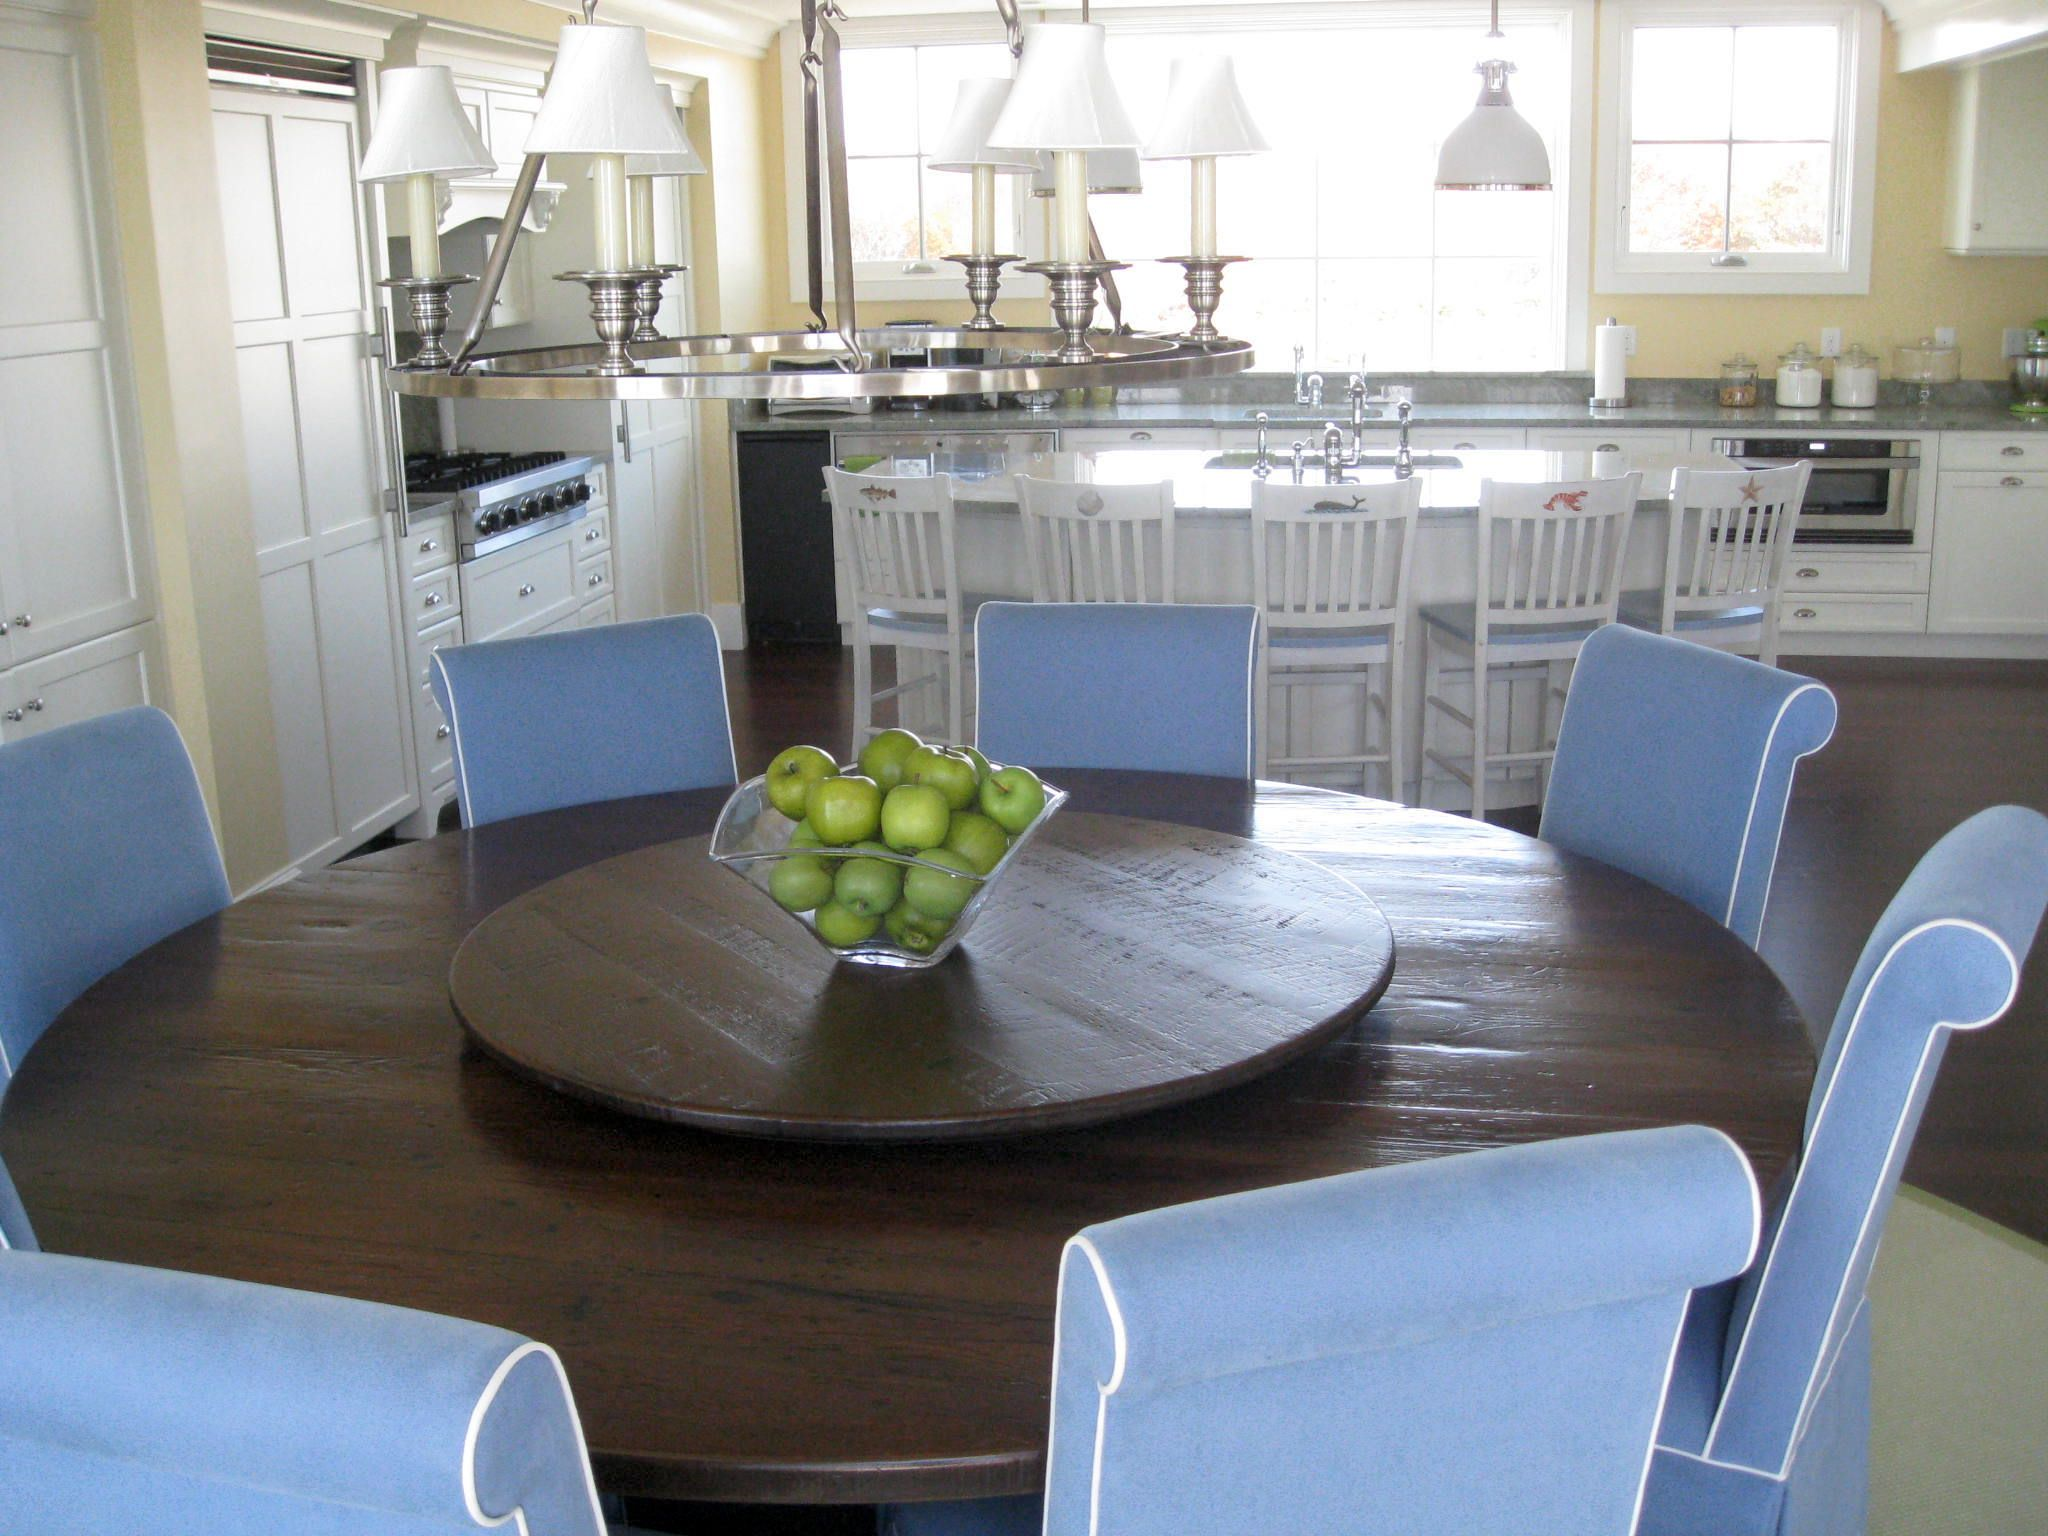 60 Inch Round Old Pine Farm Table In Antique Walnut Color In